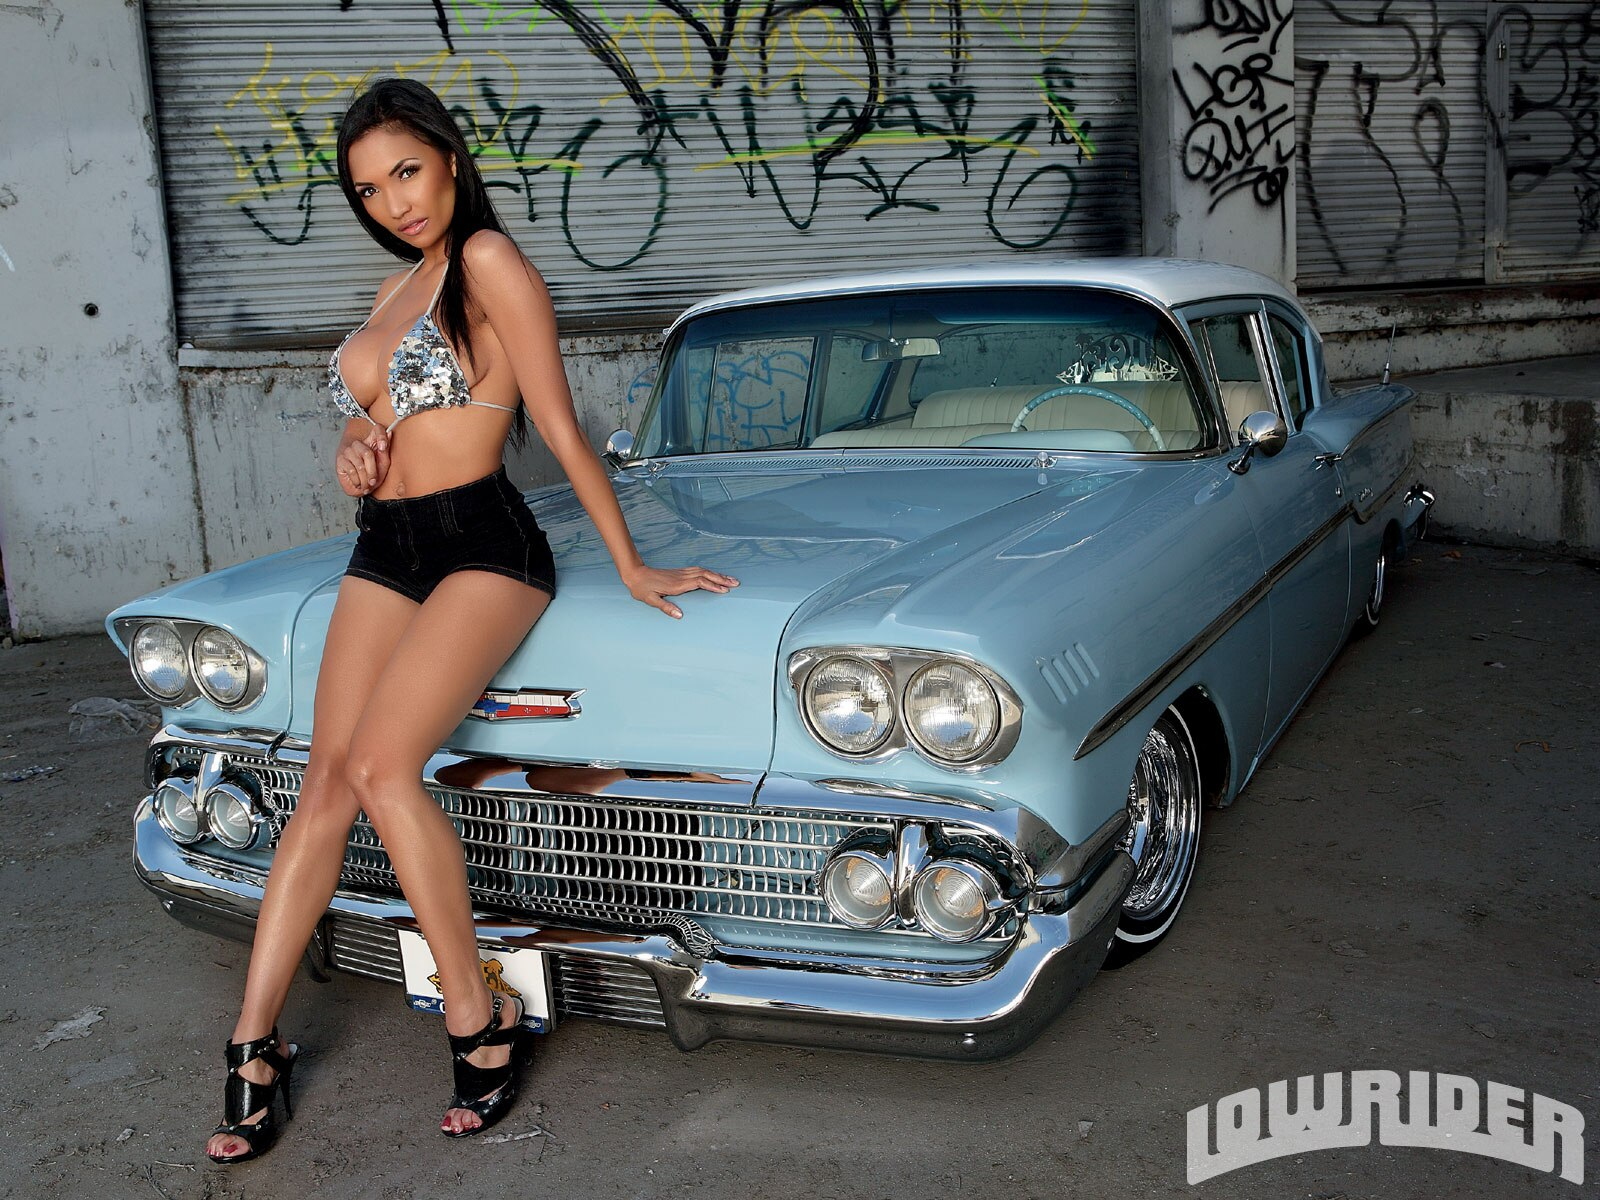 0907_lrms_01_o-raven_lowrider_girls_model-posing_with_car2